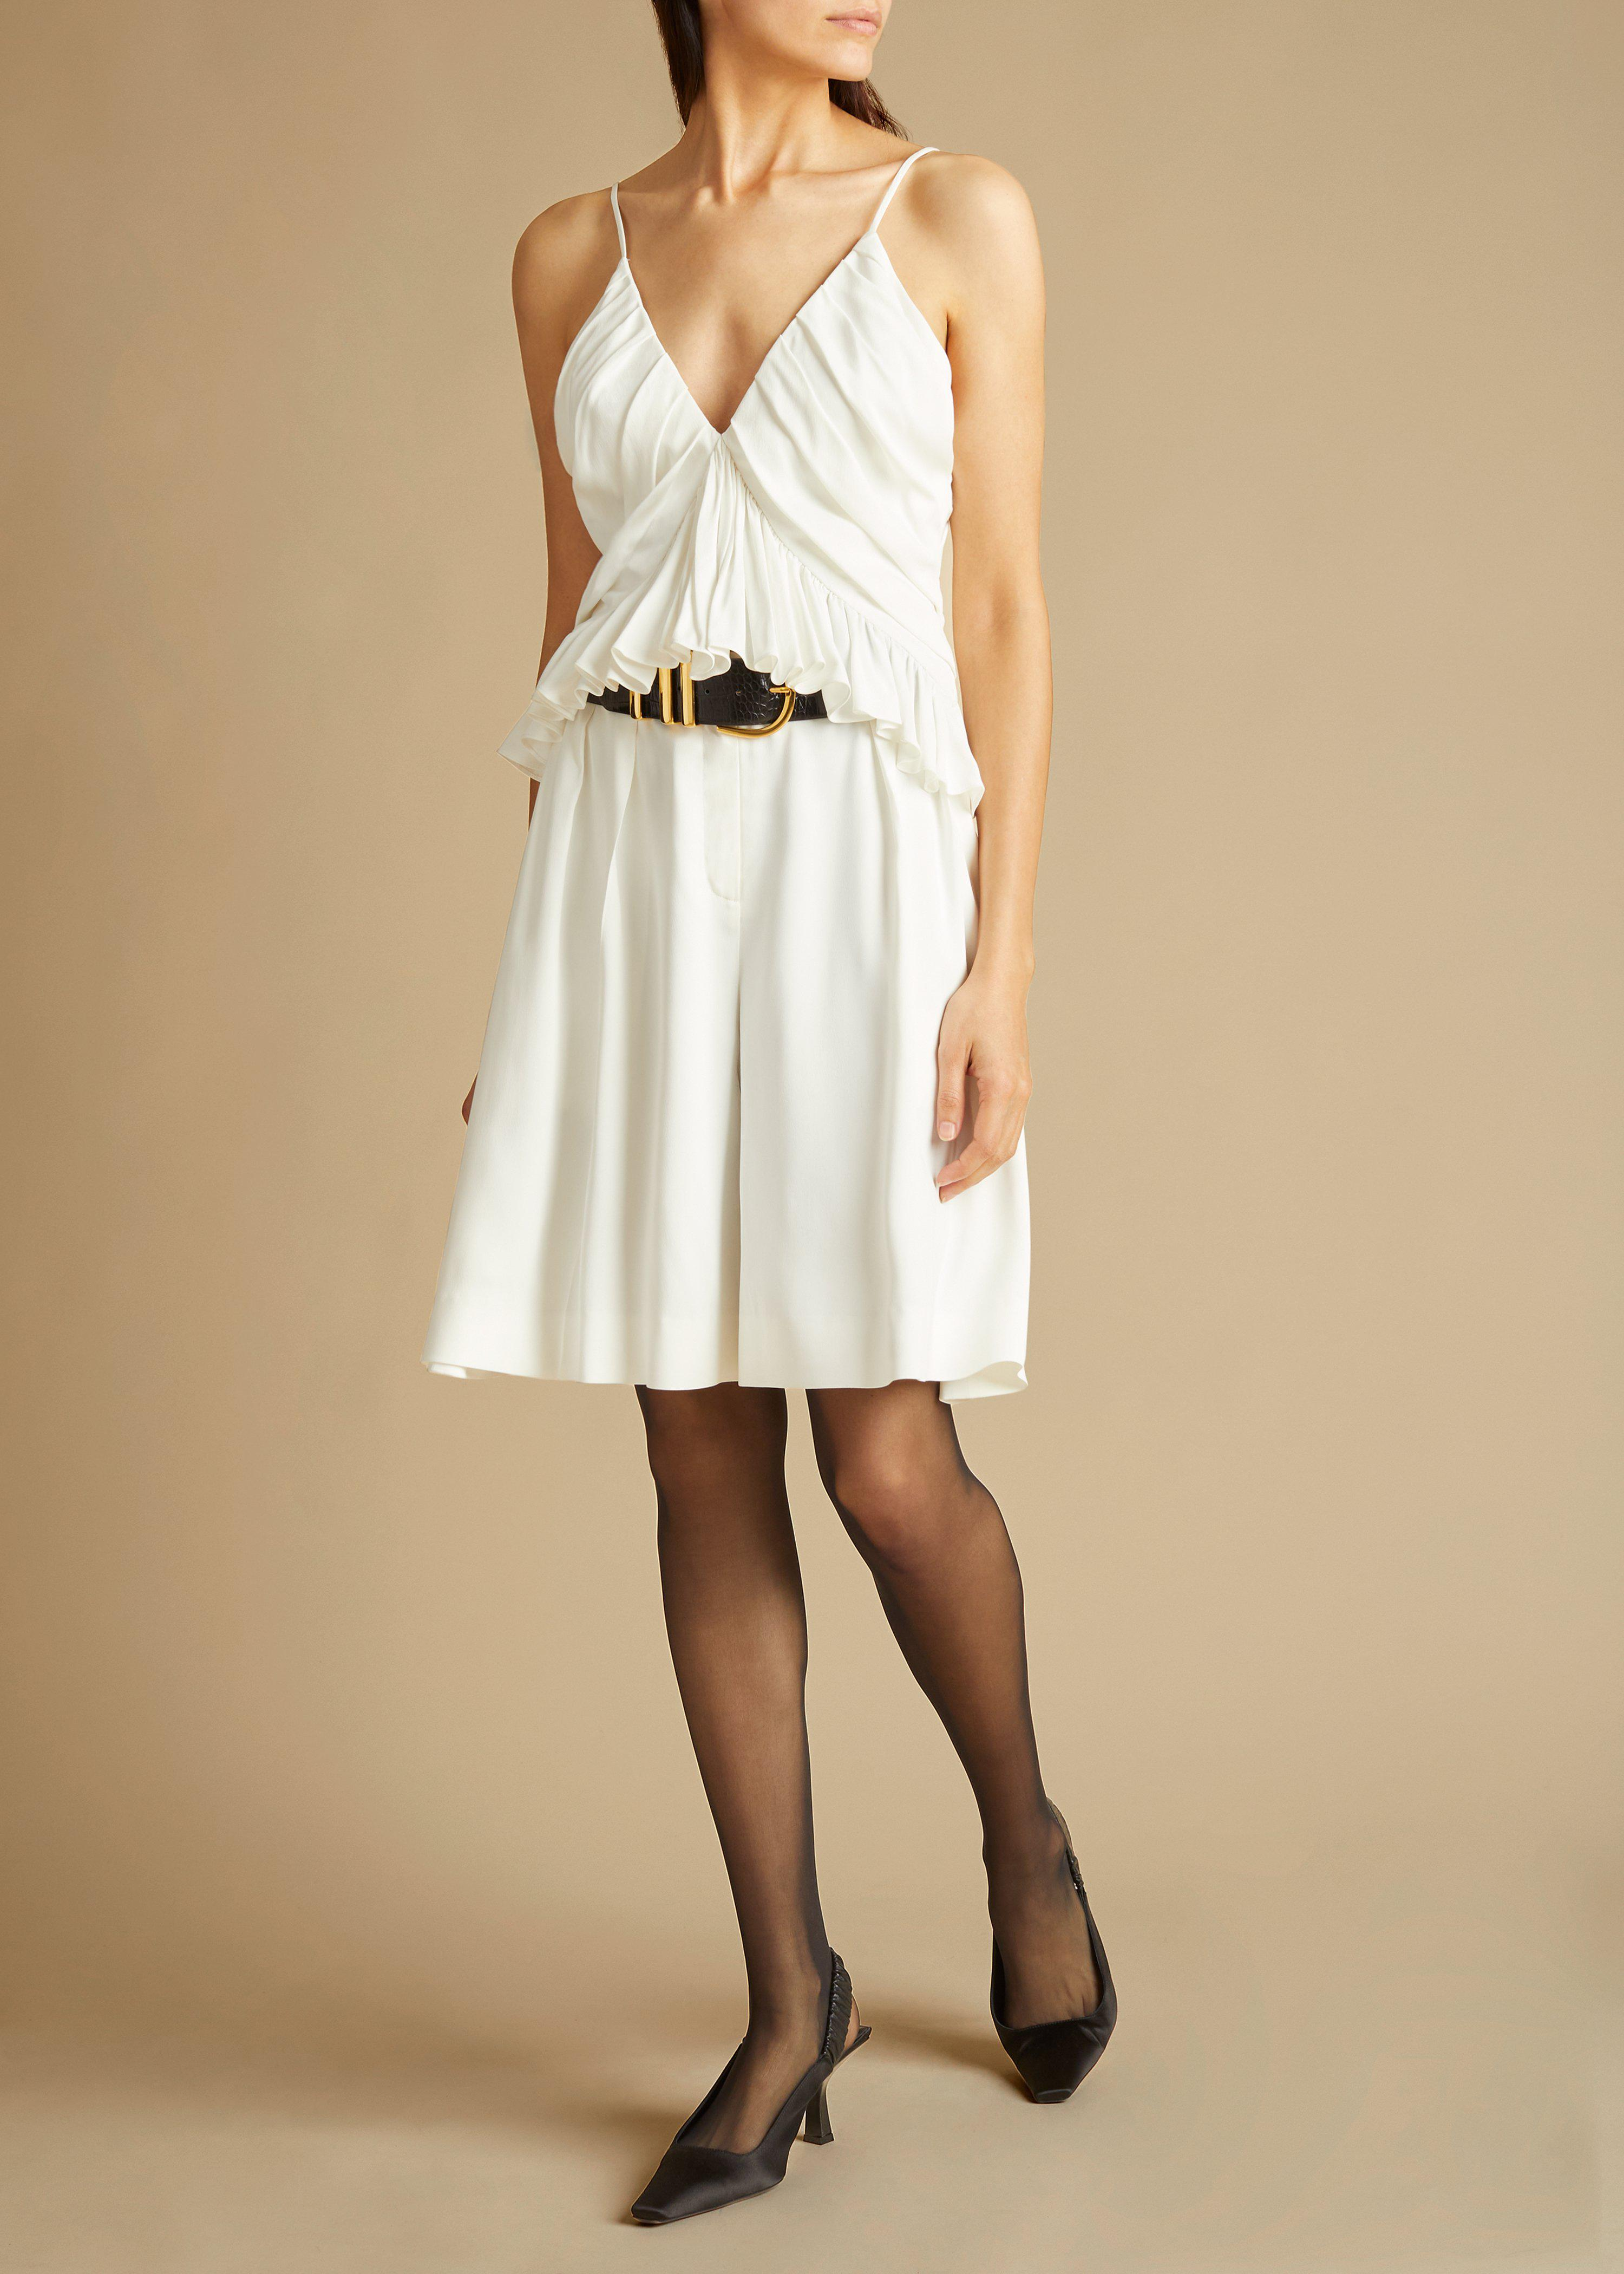 The Isabelle Short in Ivory